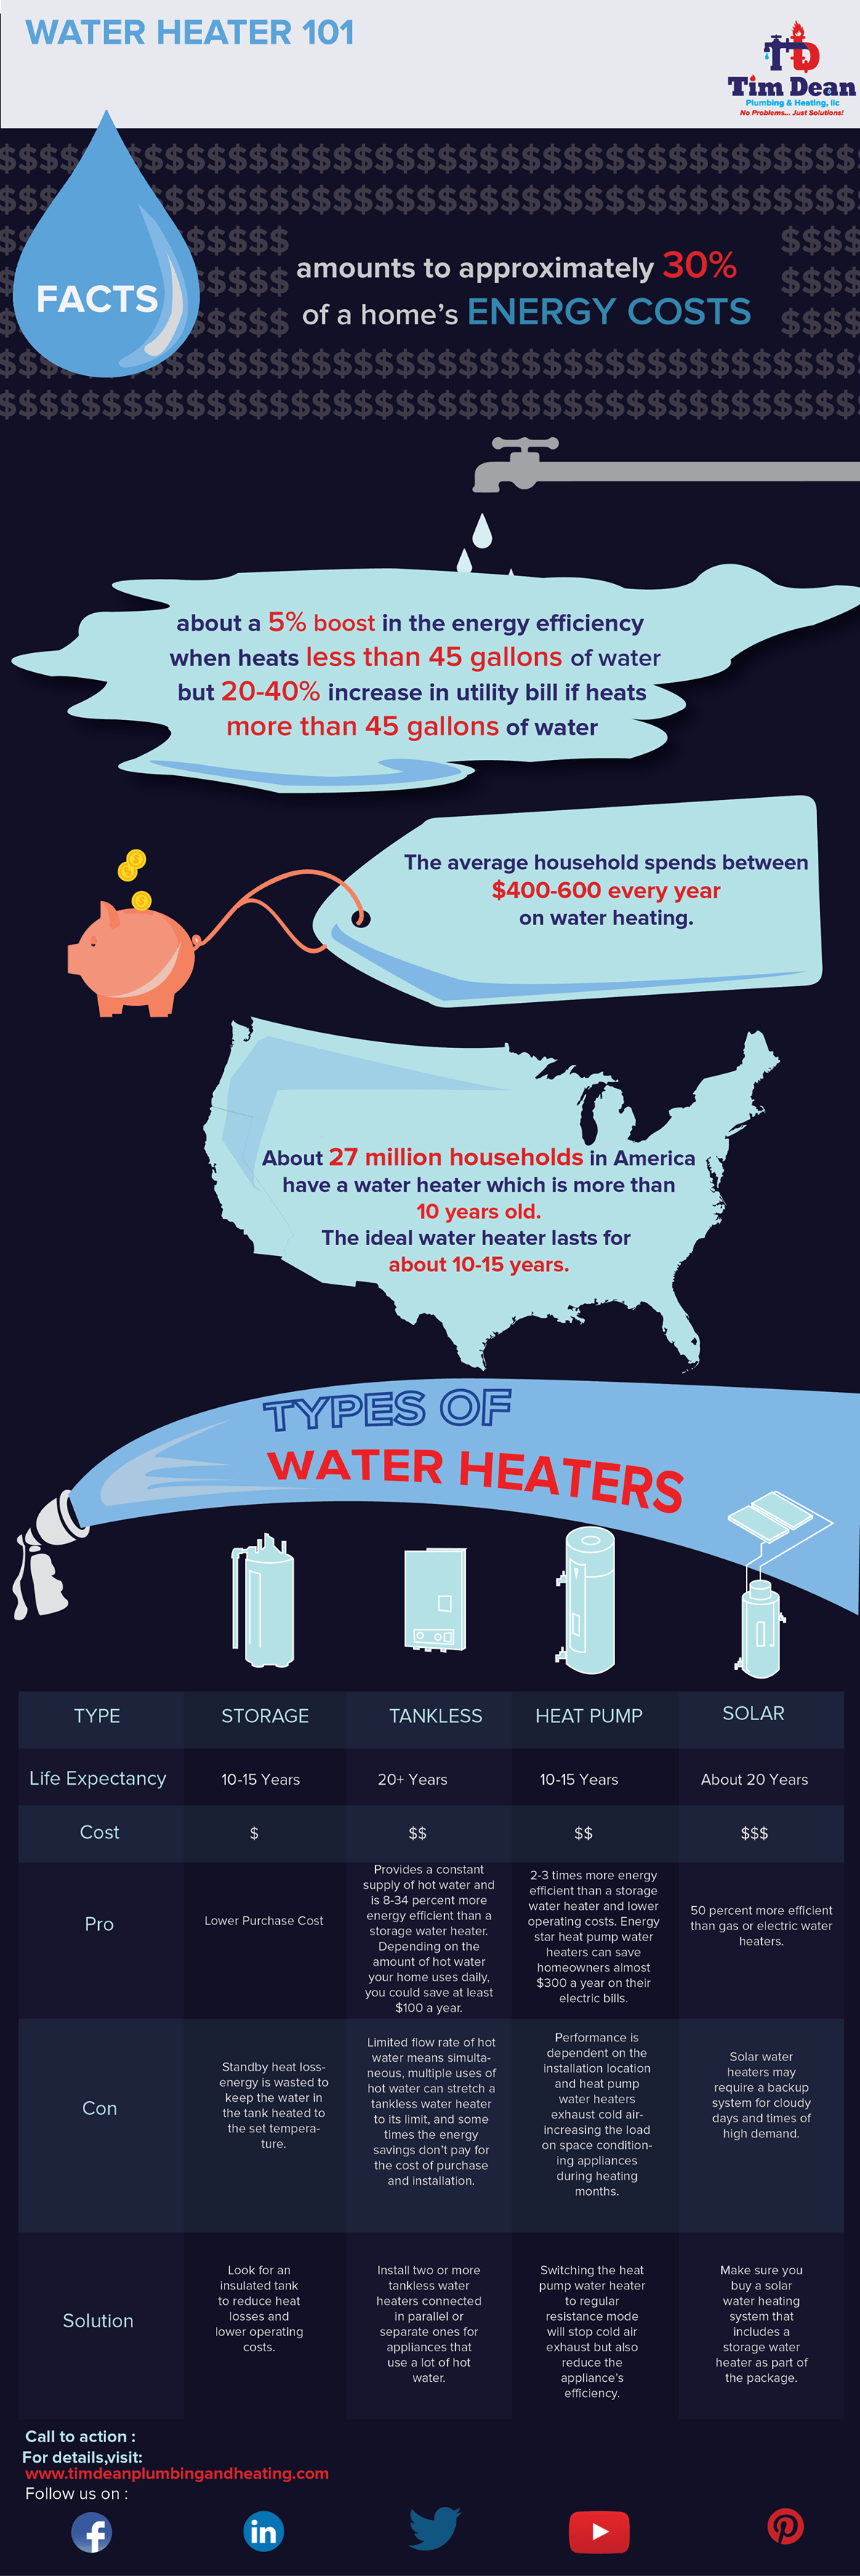 Types of Hot Water Heaters - Tim Dean Plumbing & Heating, LLC